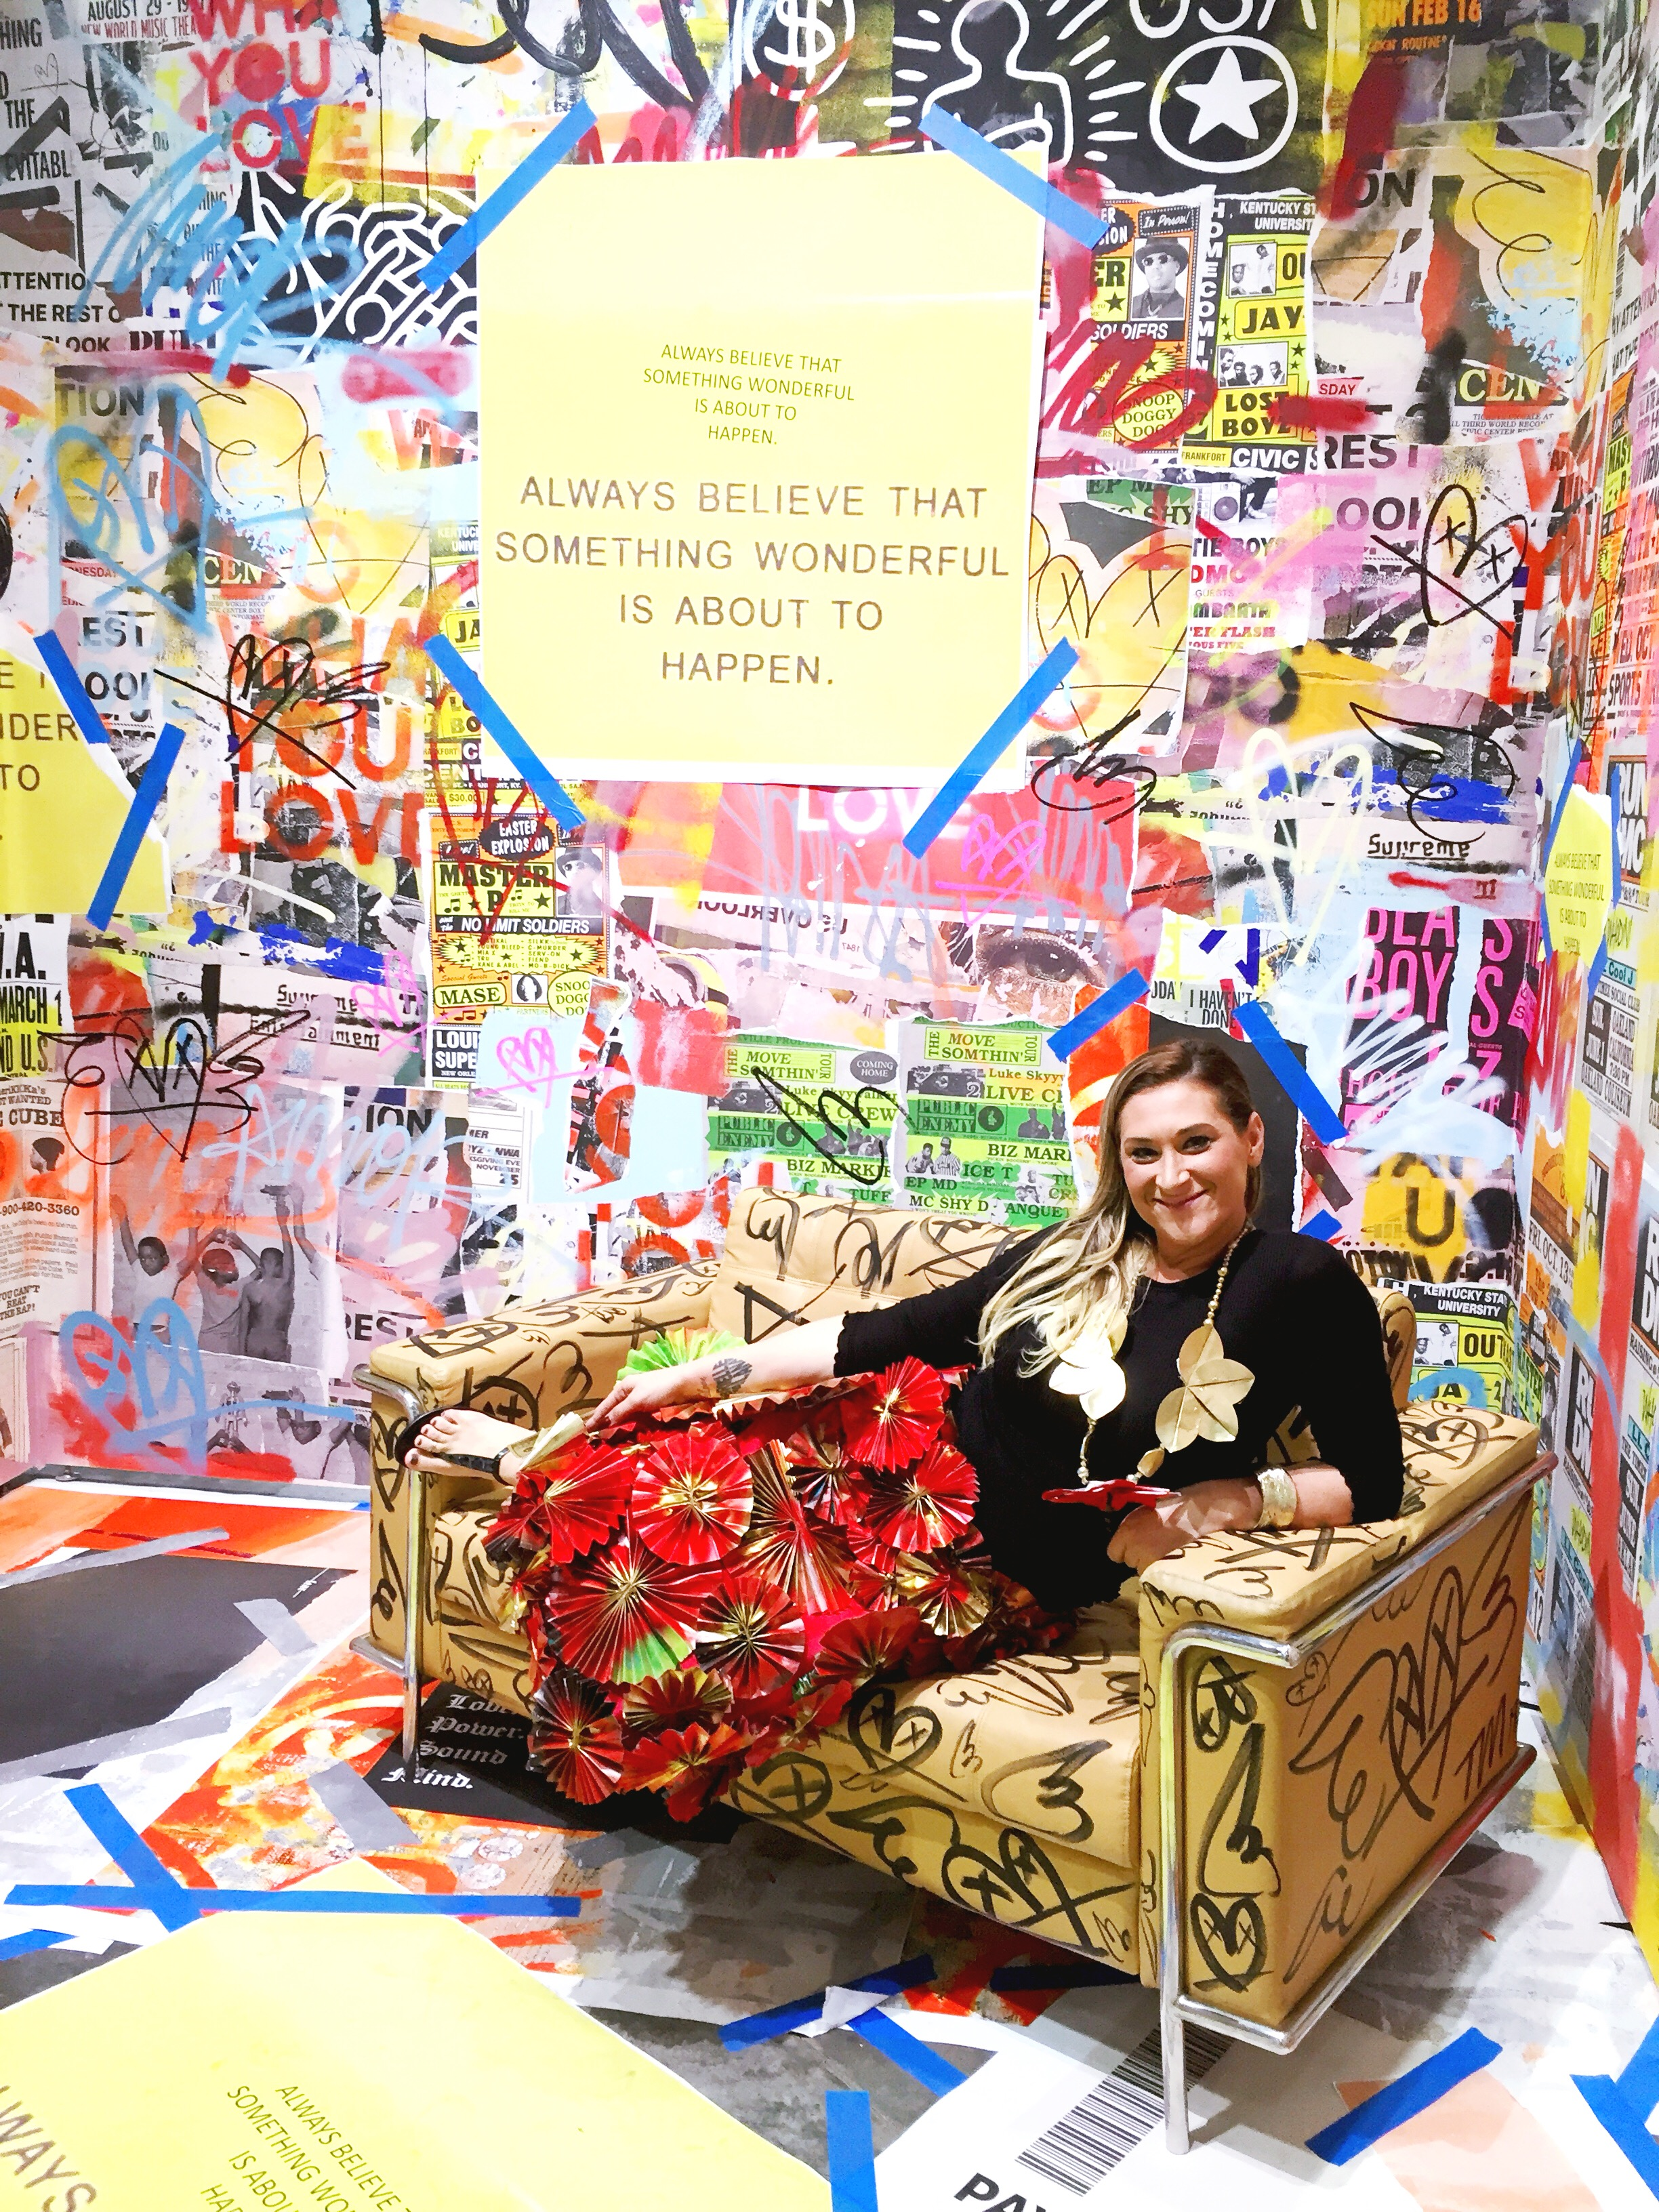 Our model Eleanore makes herself comfortable at the Art Plug booth, https://www.theartplug.net/events/